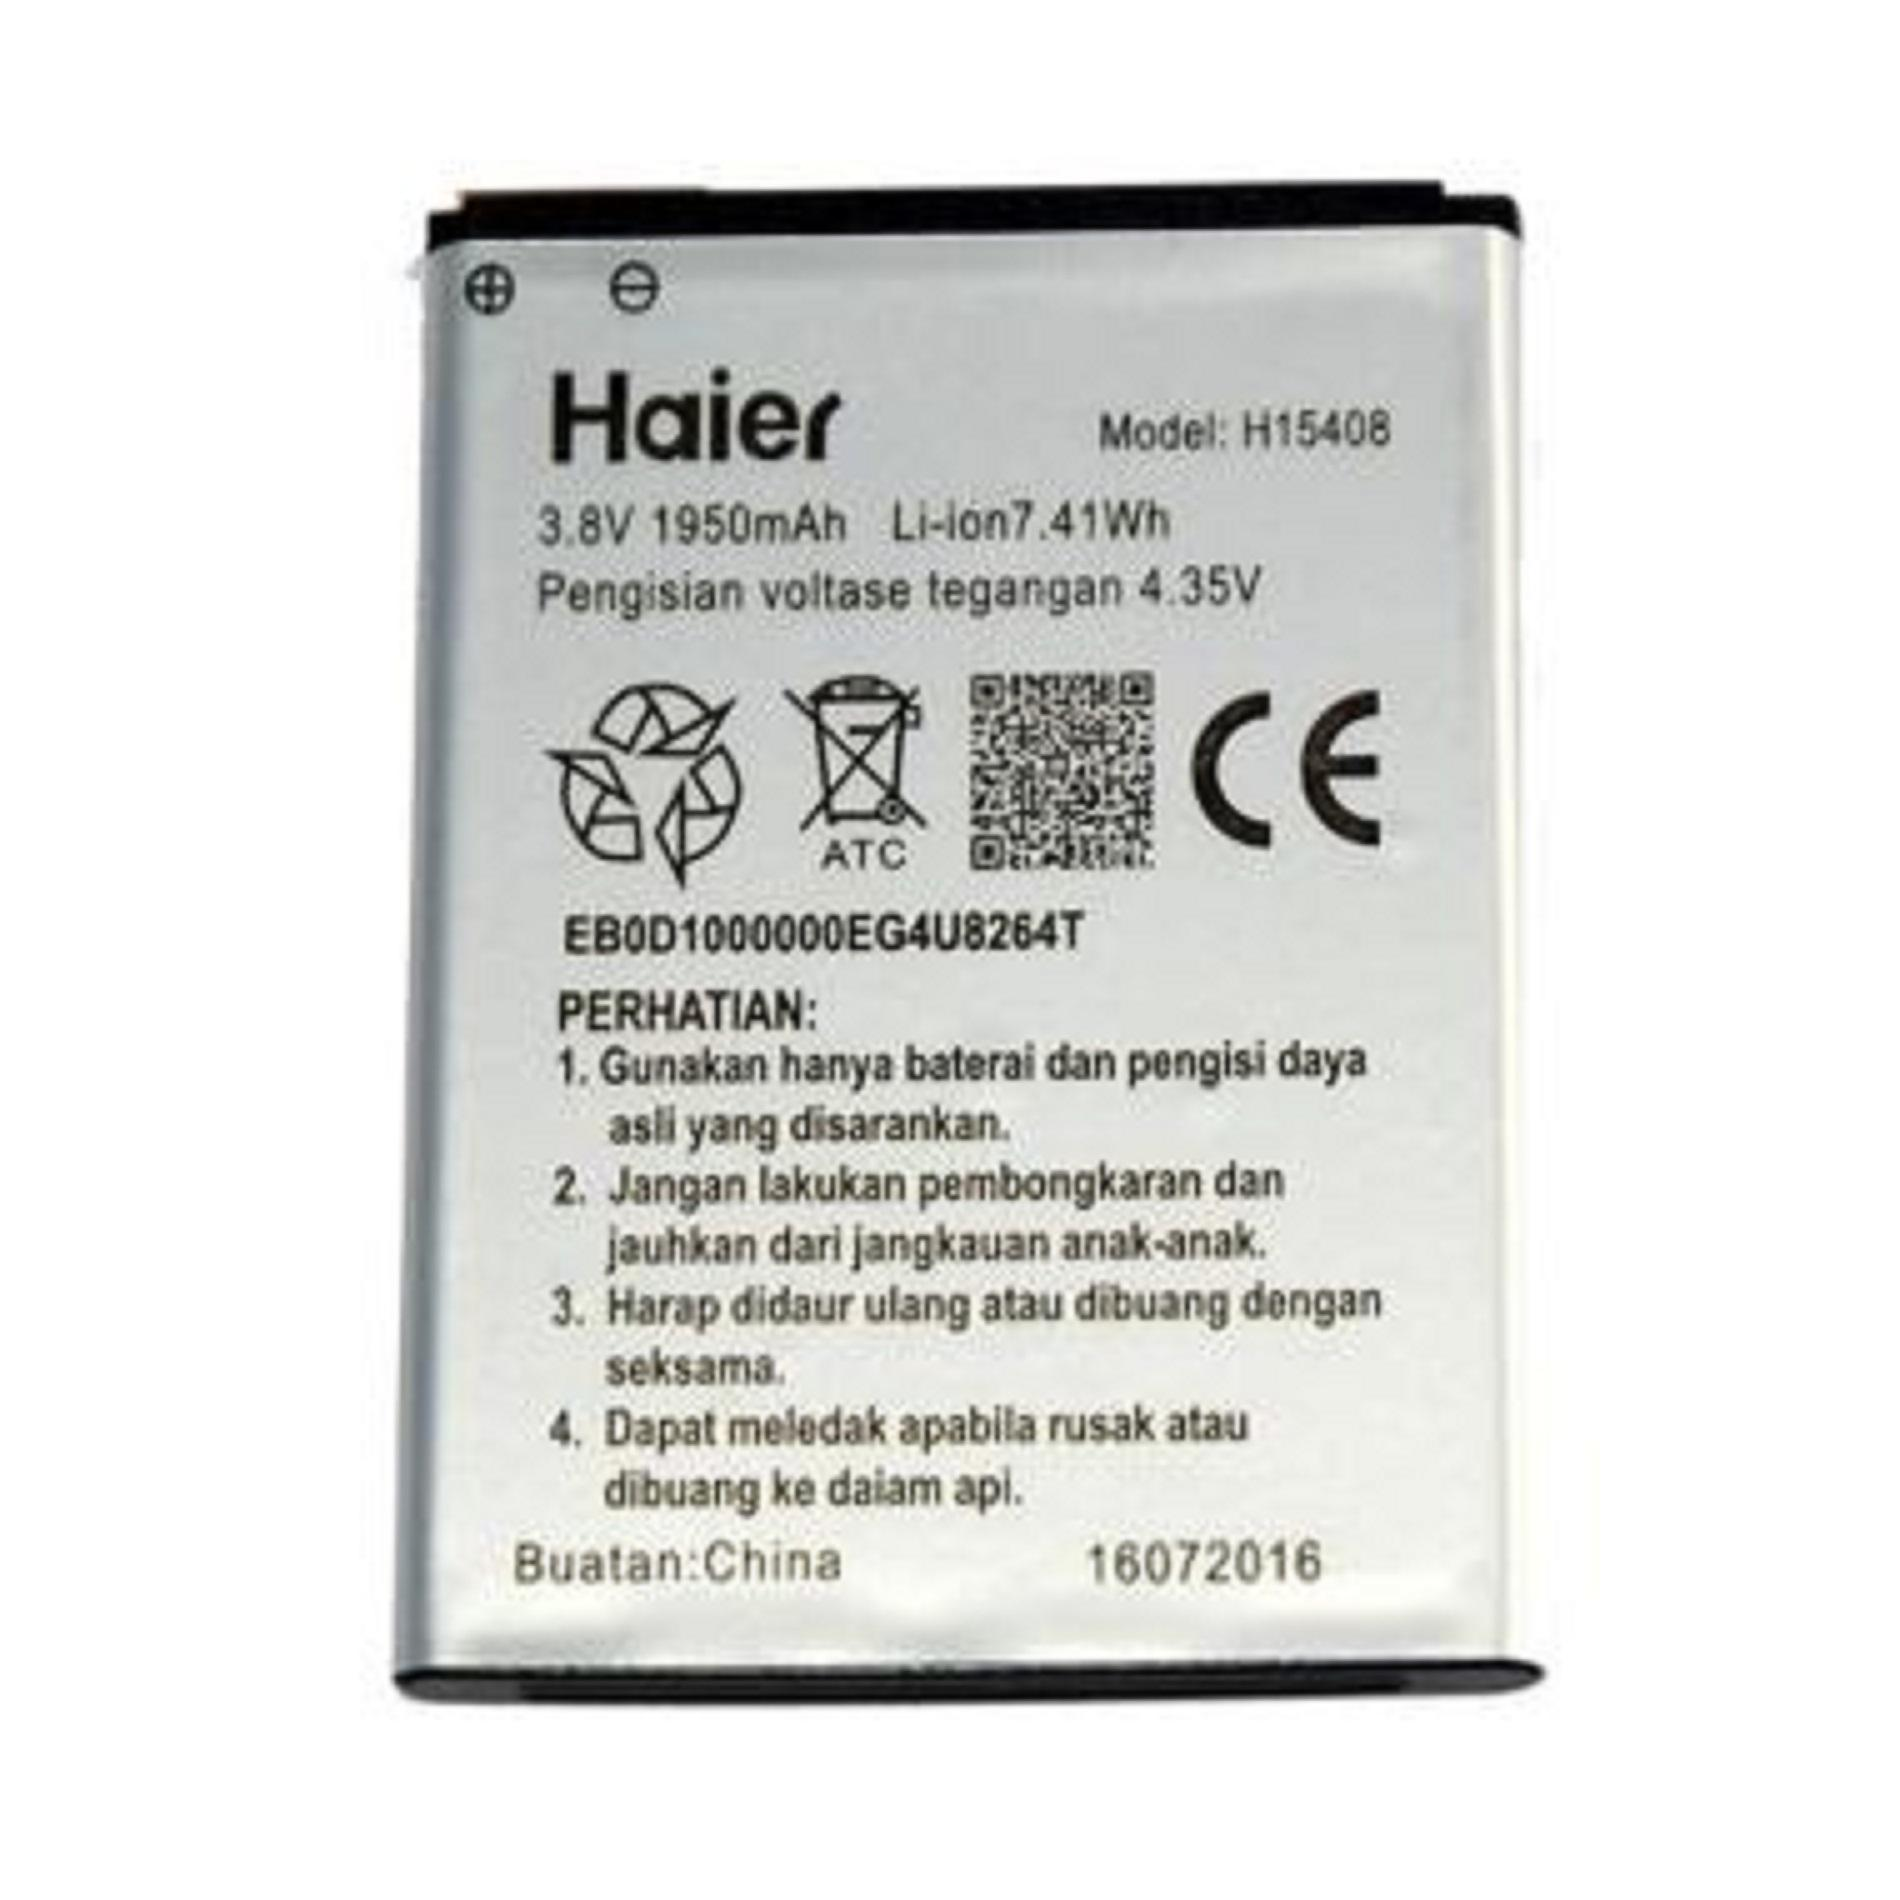 Buy Sell Cheapest Baterai Batre Andromax Best Quality Product Battery Log On Original 100 Double Power Utk Modem Smartfren 4g Lte Mifi M3y M3z Grosir A H15408 99